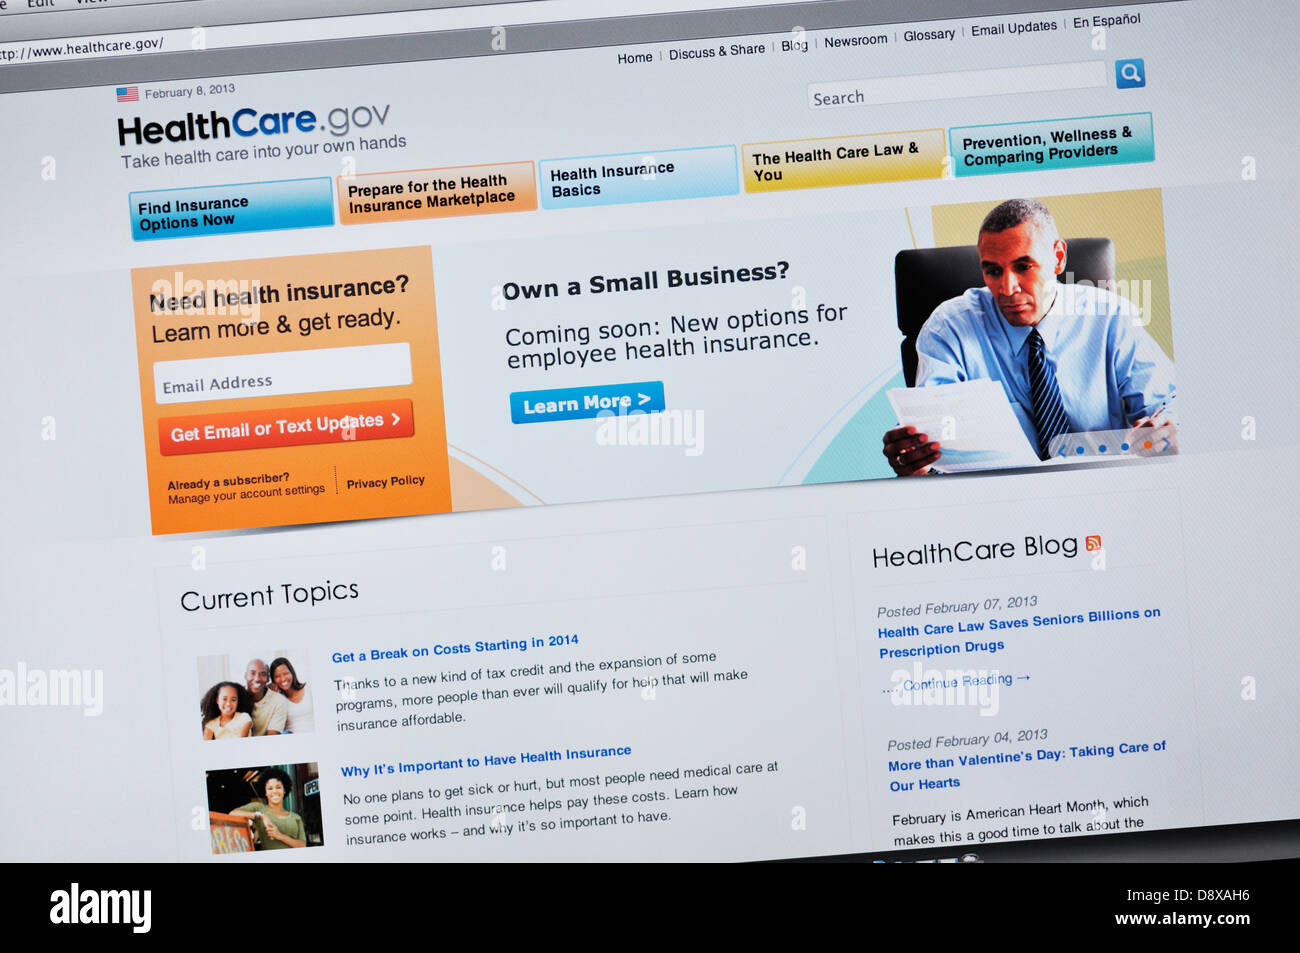 Healthcare Gov Quotes Healthcare Gov Quotes Magnificent Healthcare.gov Window Shopping